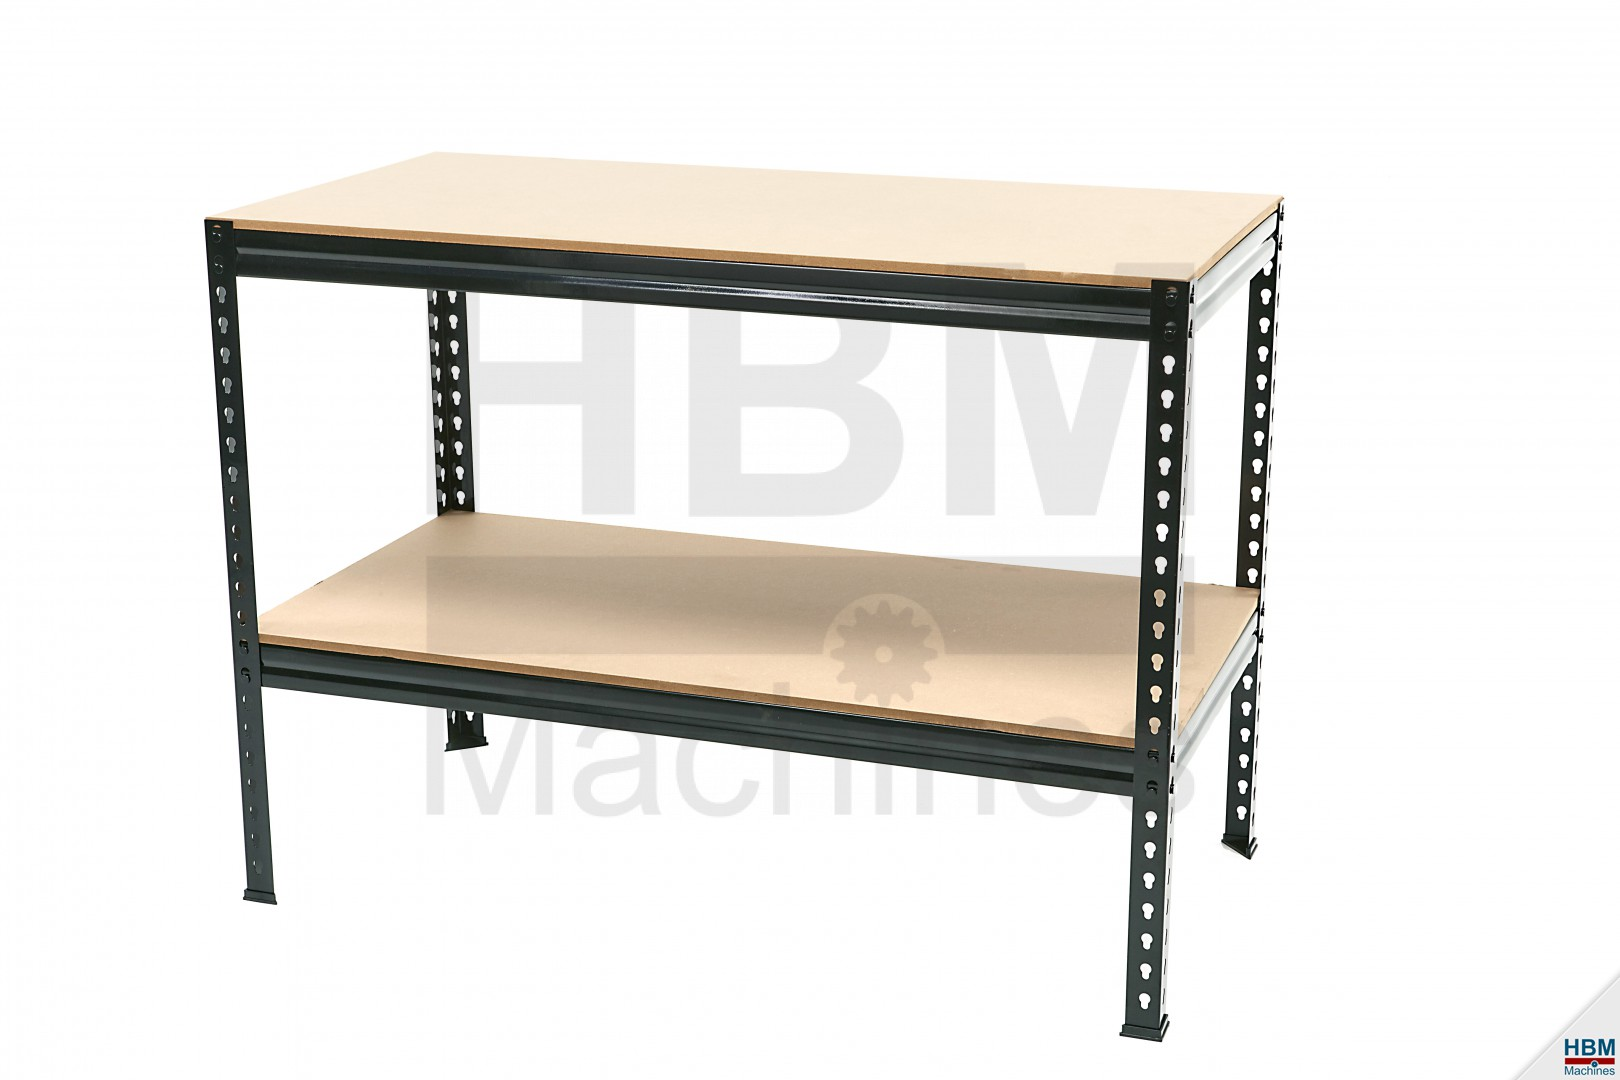 hbm 120 cm hobby werkbank met mdf blad hbm machines. Black Bedroom Furniture Sets. Home Design Ideas